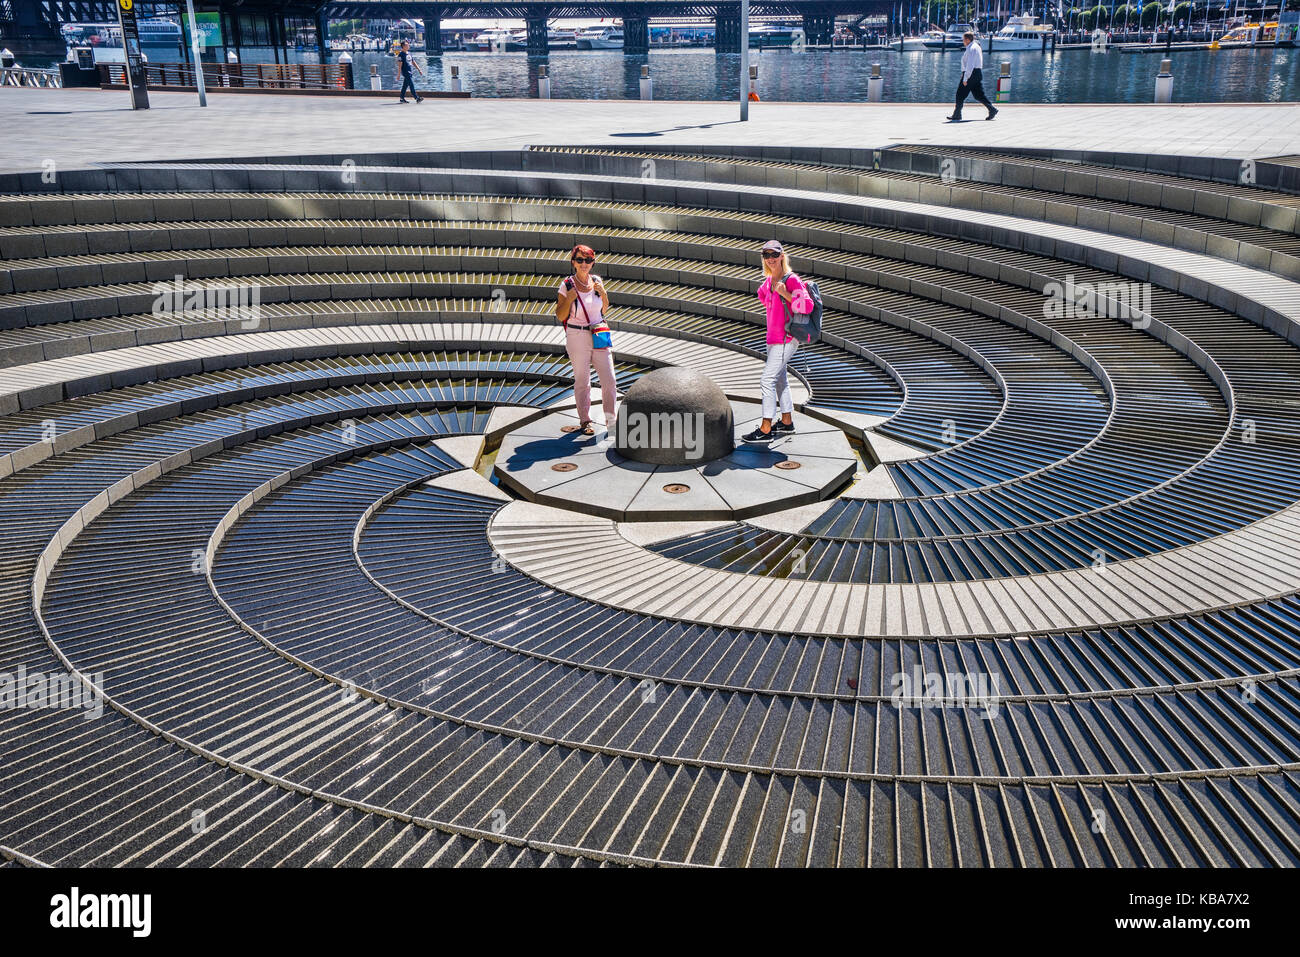 Australia, New South Wales, Sydney, Darling Harbour, Tidal Cascades Water Instalation - Stock Image